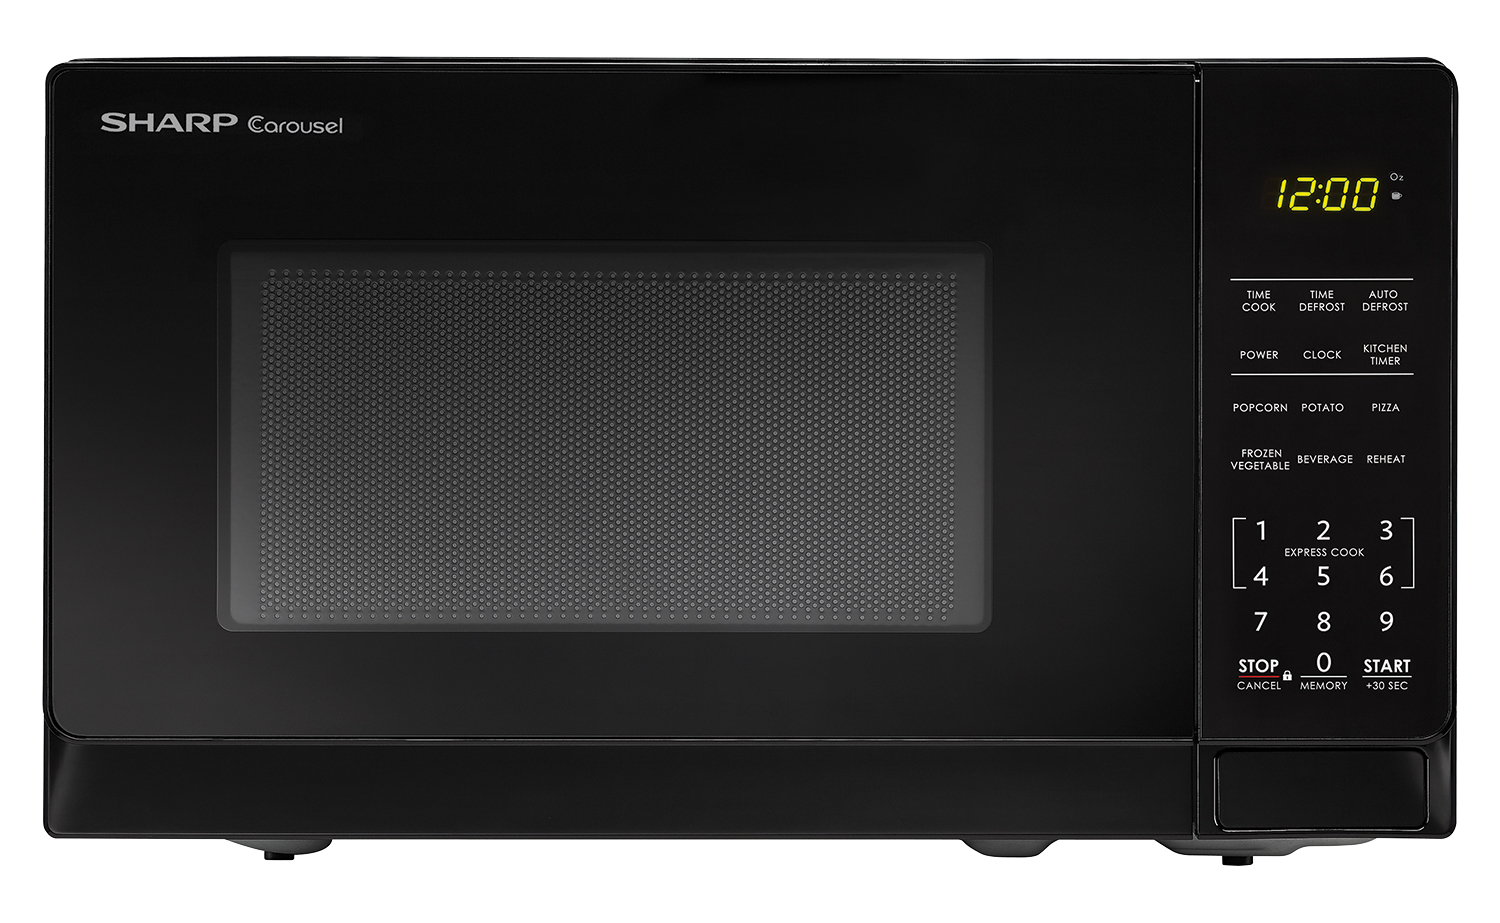 Smc0710bb 0 7 Cu Ft Black Carousel Microwave Sharp